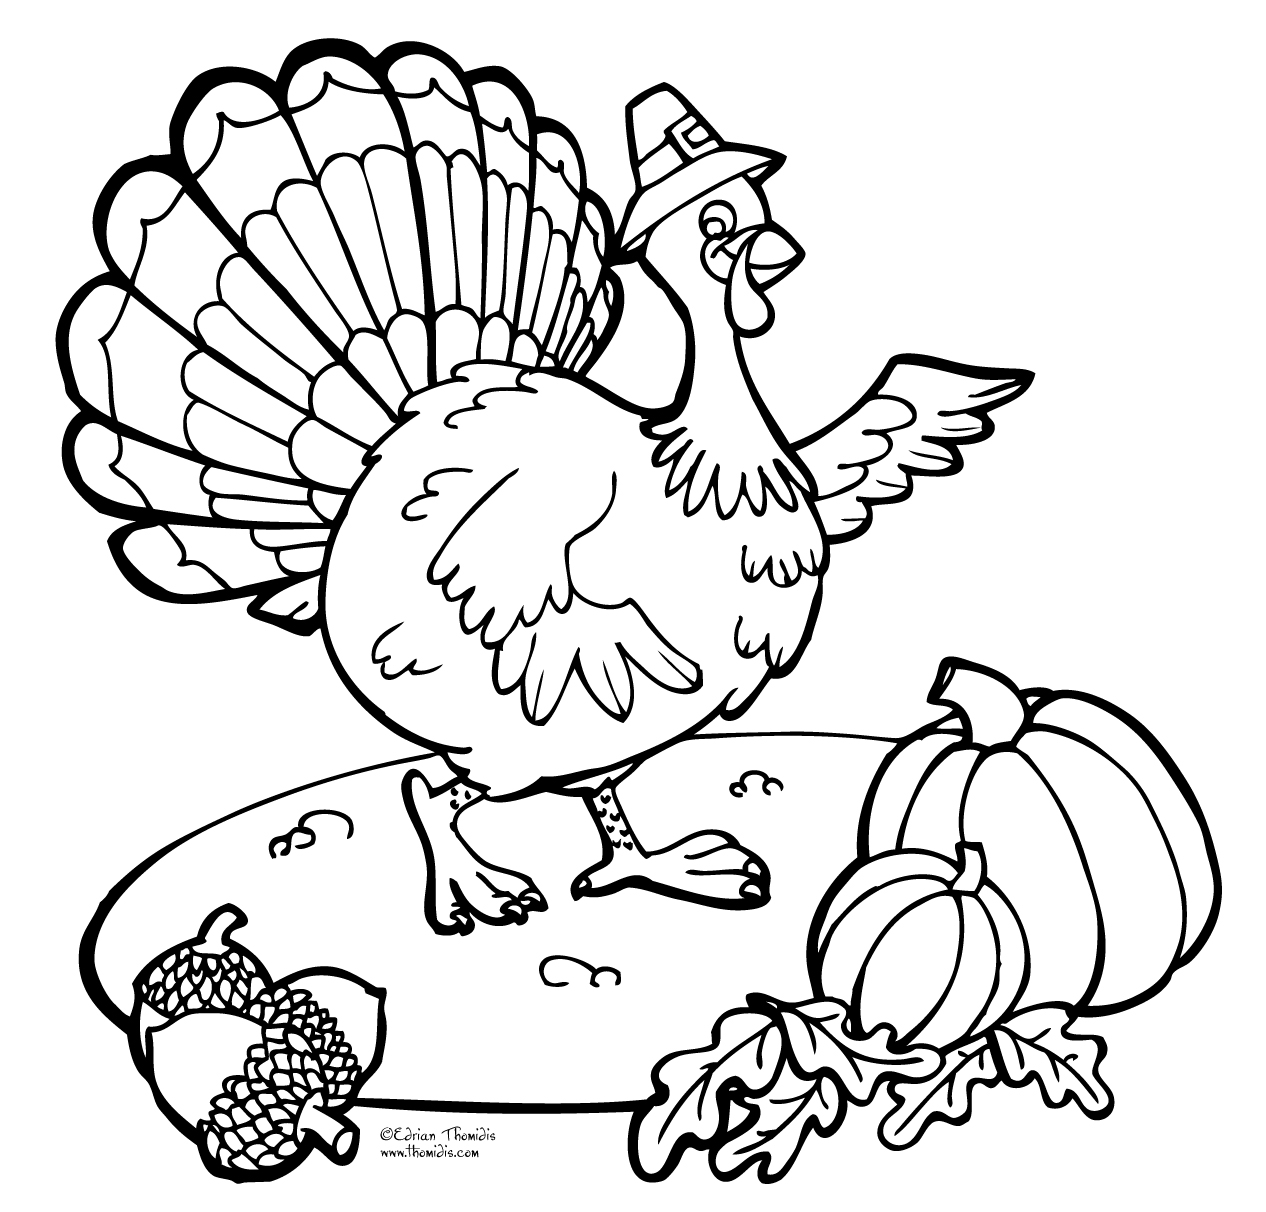 A Picture Paints A Thousand Words November 2010 Thanksgiving Coloring Book Pages